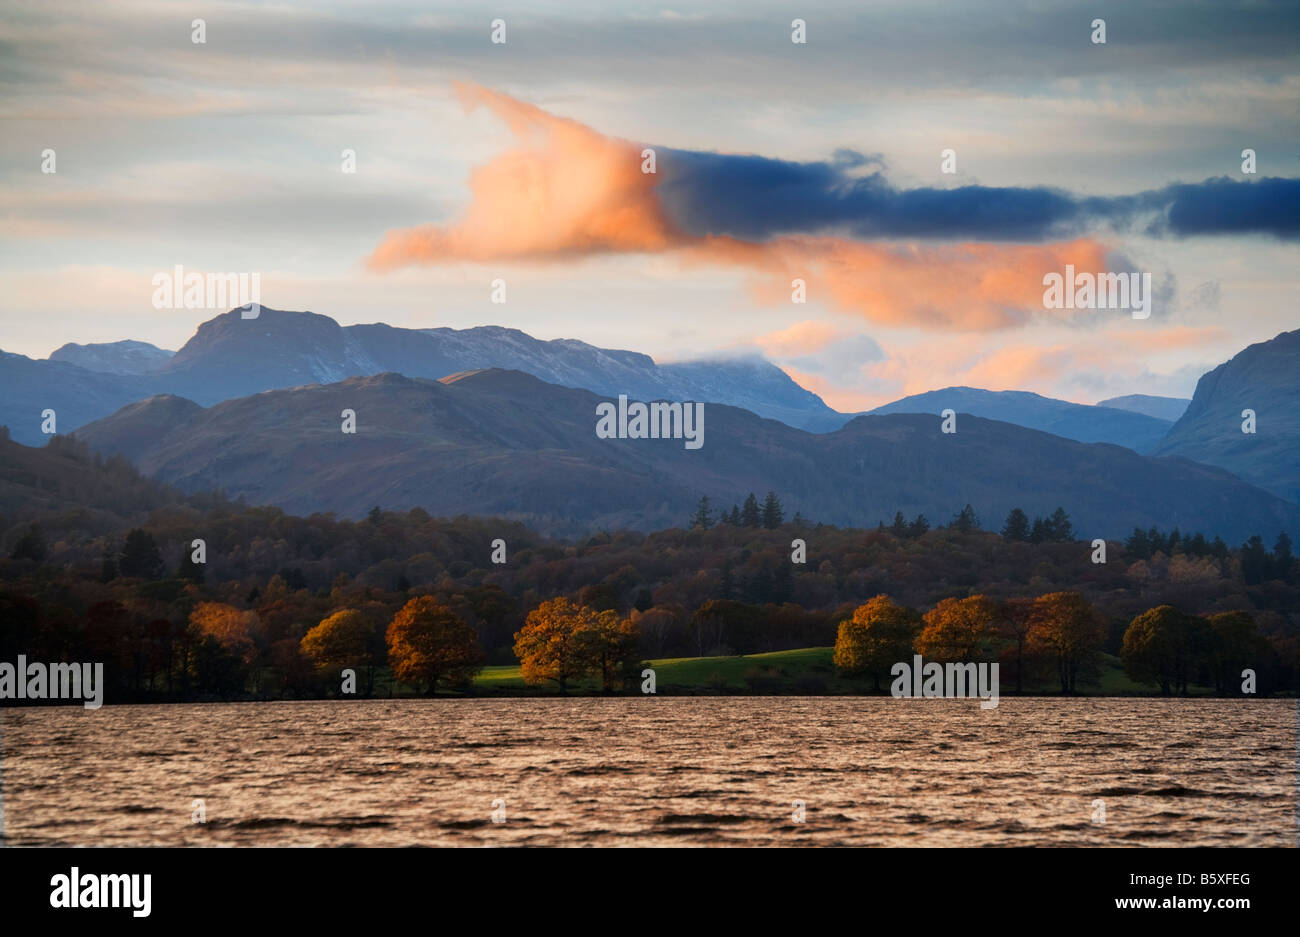 Sunset over Windermere in the Lake District Cumbria England UK with the Langdale Pikes in the distance. - Stock Image